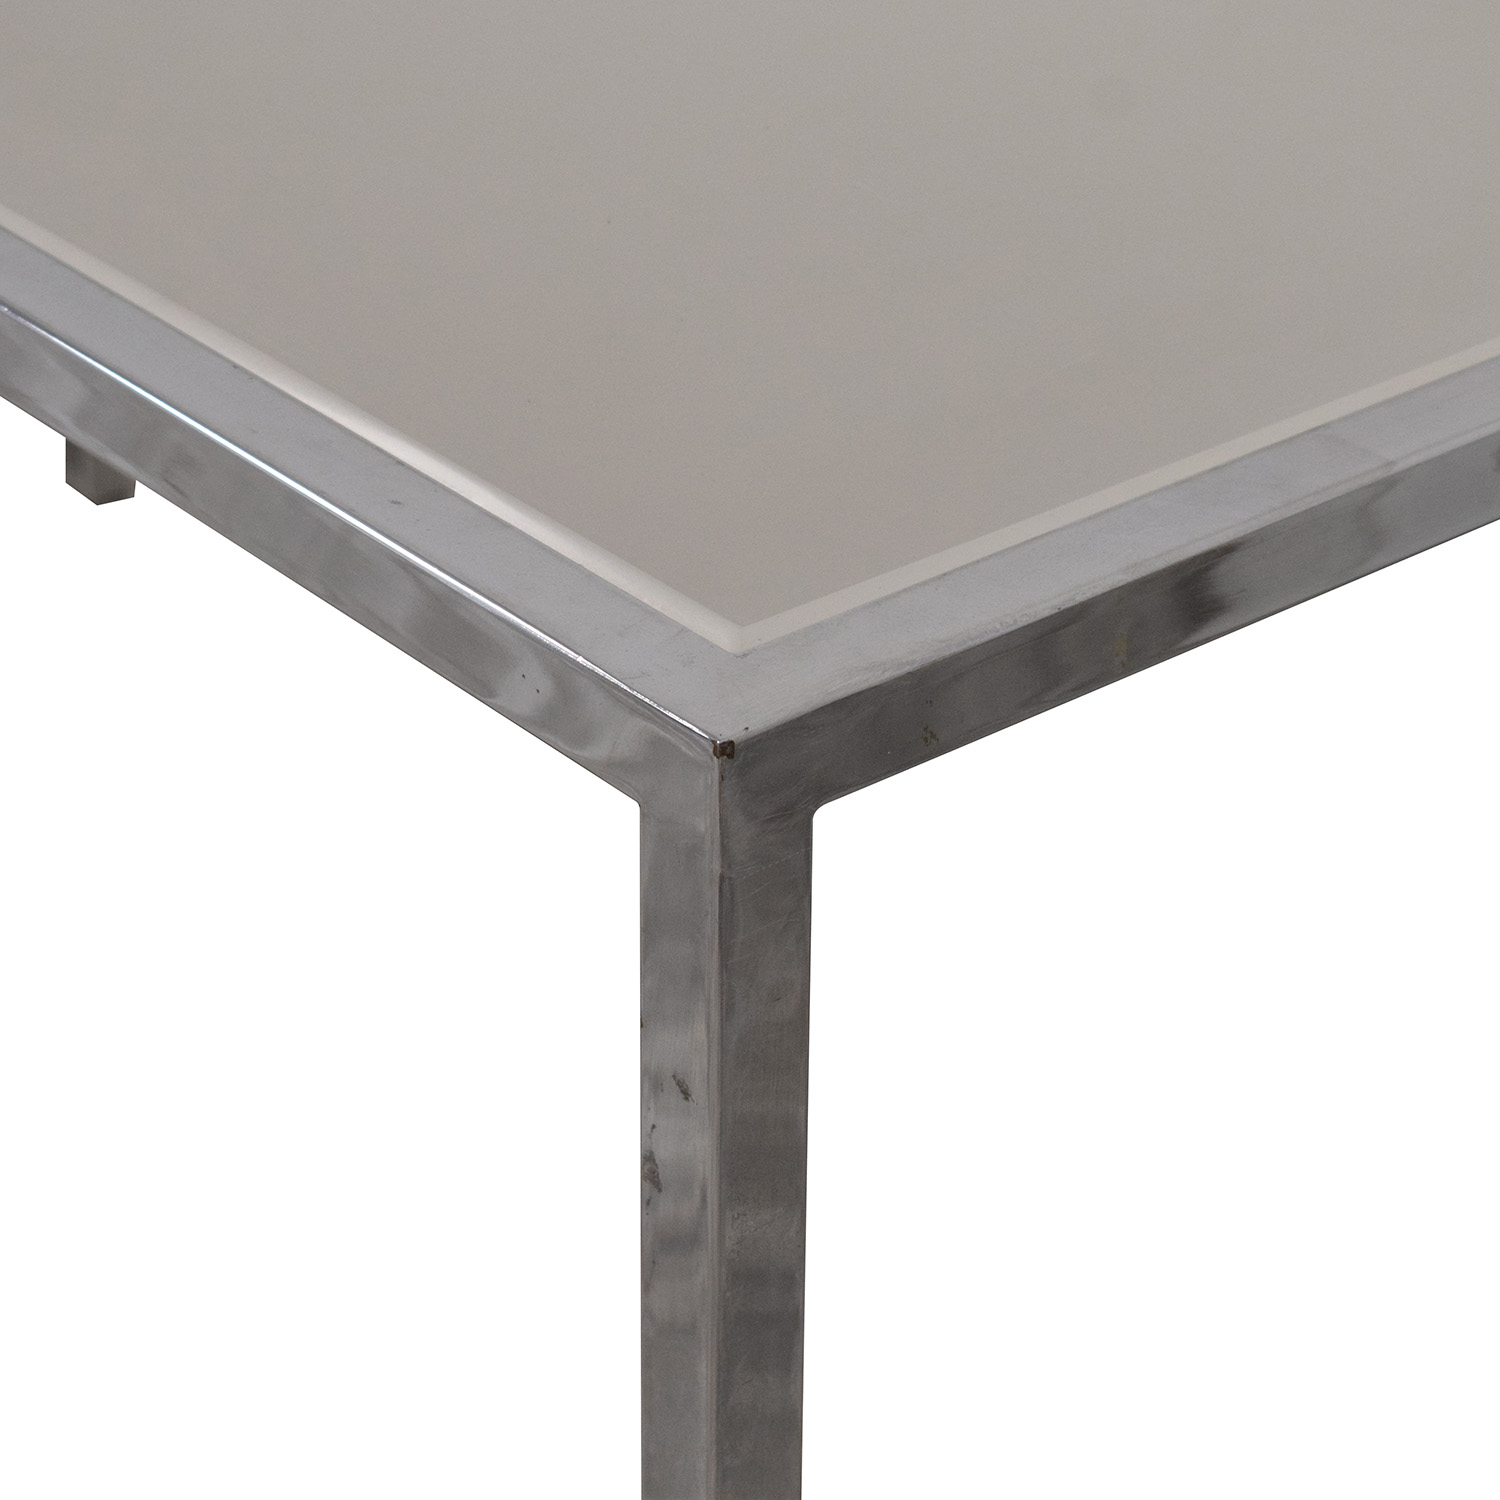 Chrome Base Dining Table with Sunken Glass Top coupon